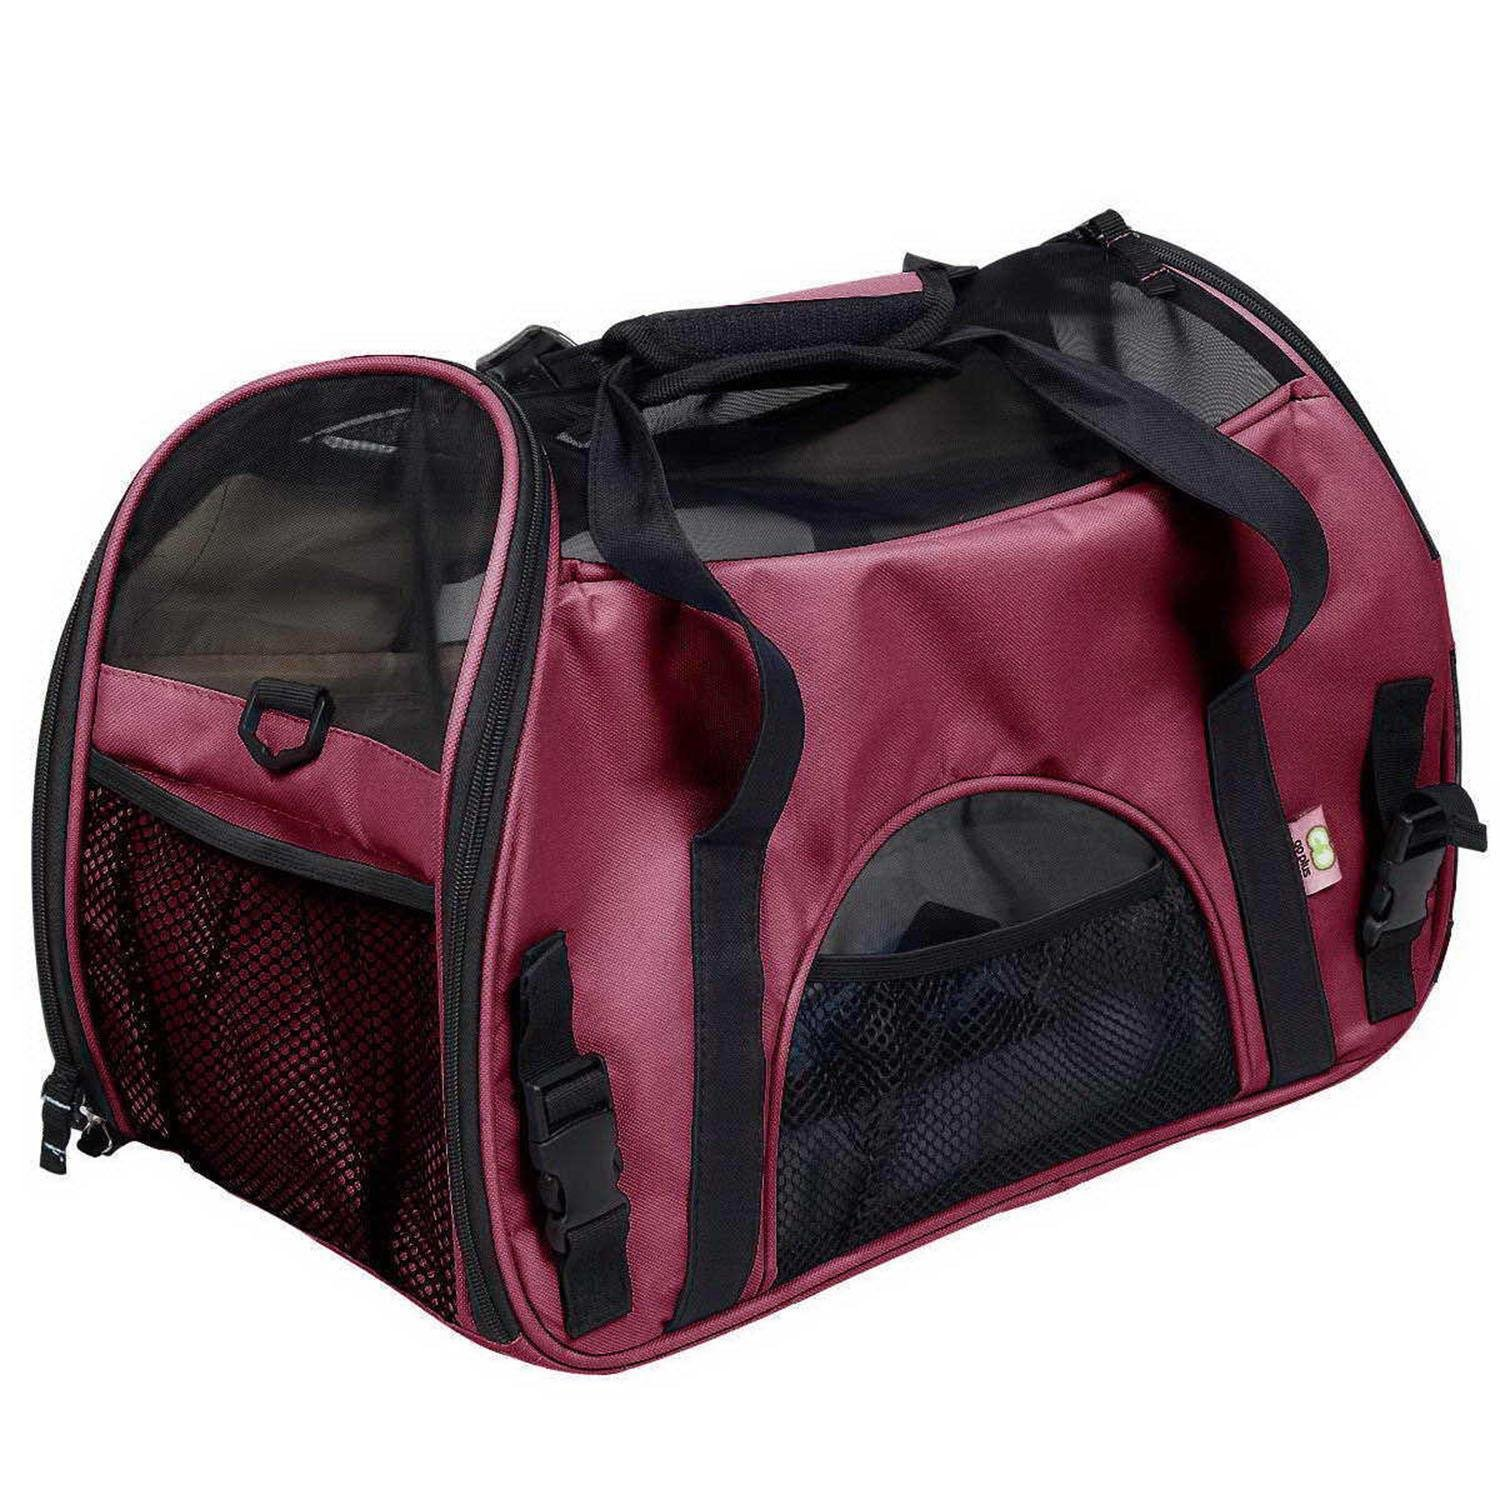 Red SmallXIONGNA Large Pet bag Cats Dogs Carriers Lightweight Fabric Travel Carrier Bag Case for Medium and Large Dogs Cats